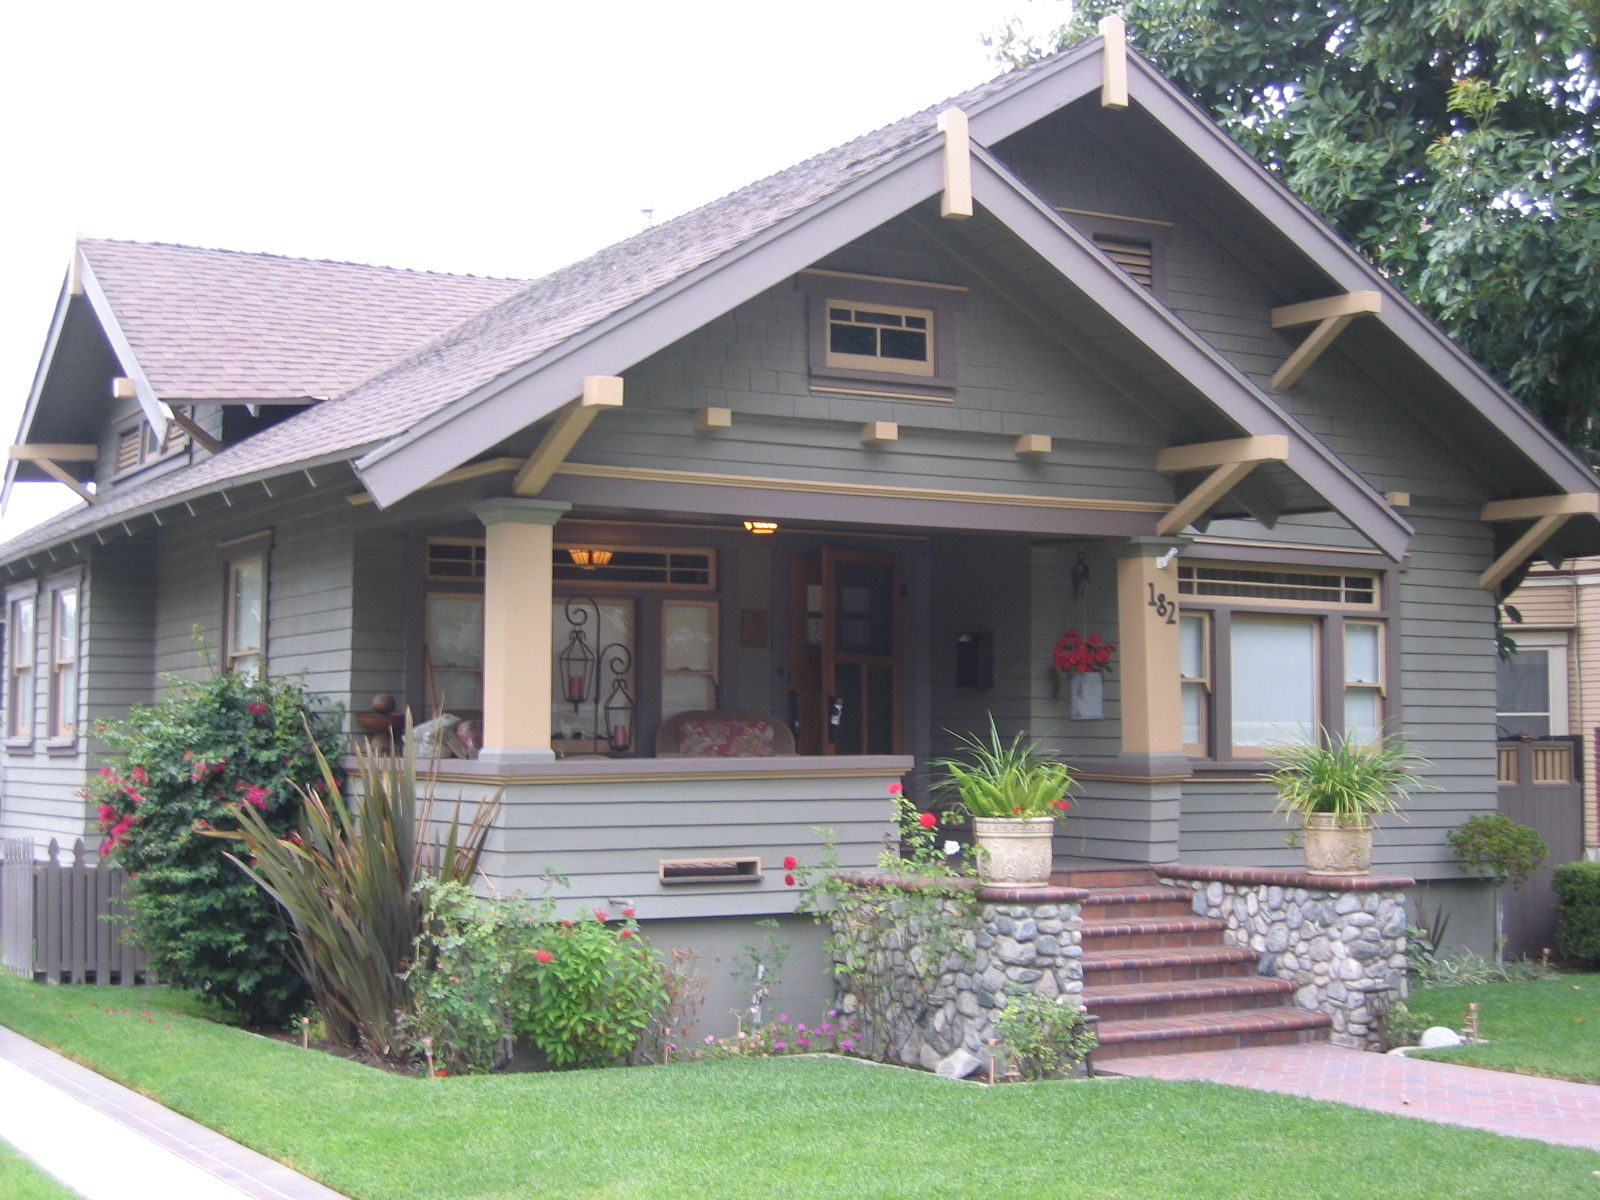 Craftsman house pictures craftsman home style sight for Craftsman home